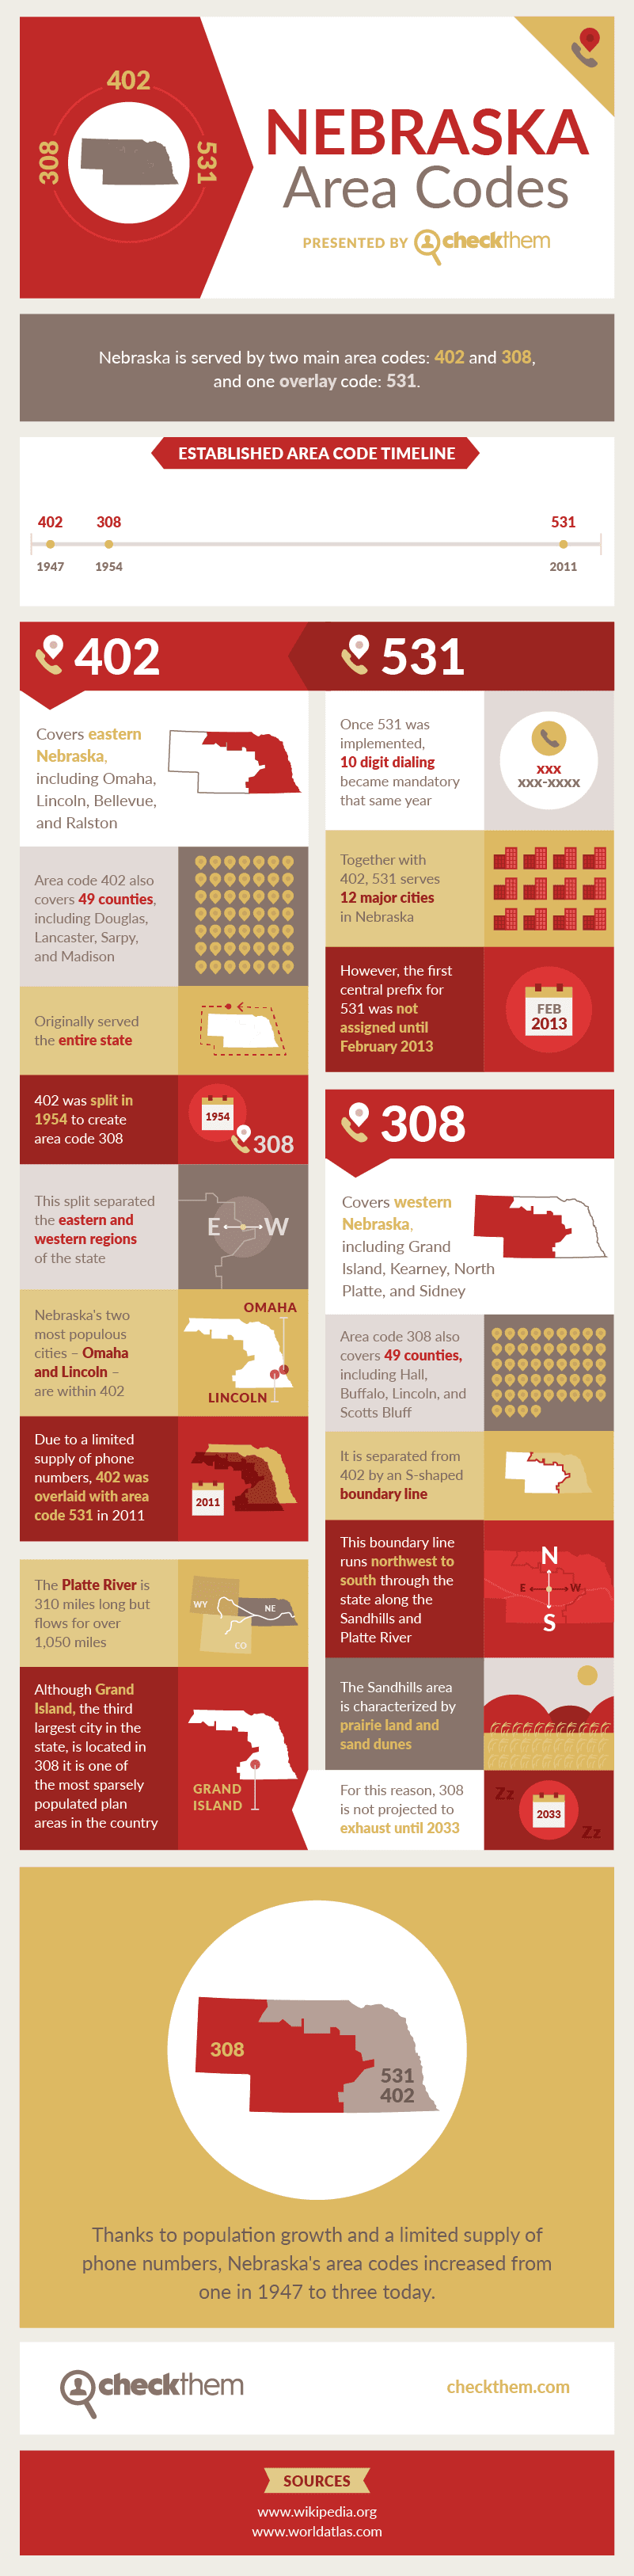 Nebraska Area Codes #infographic